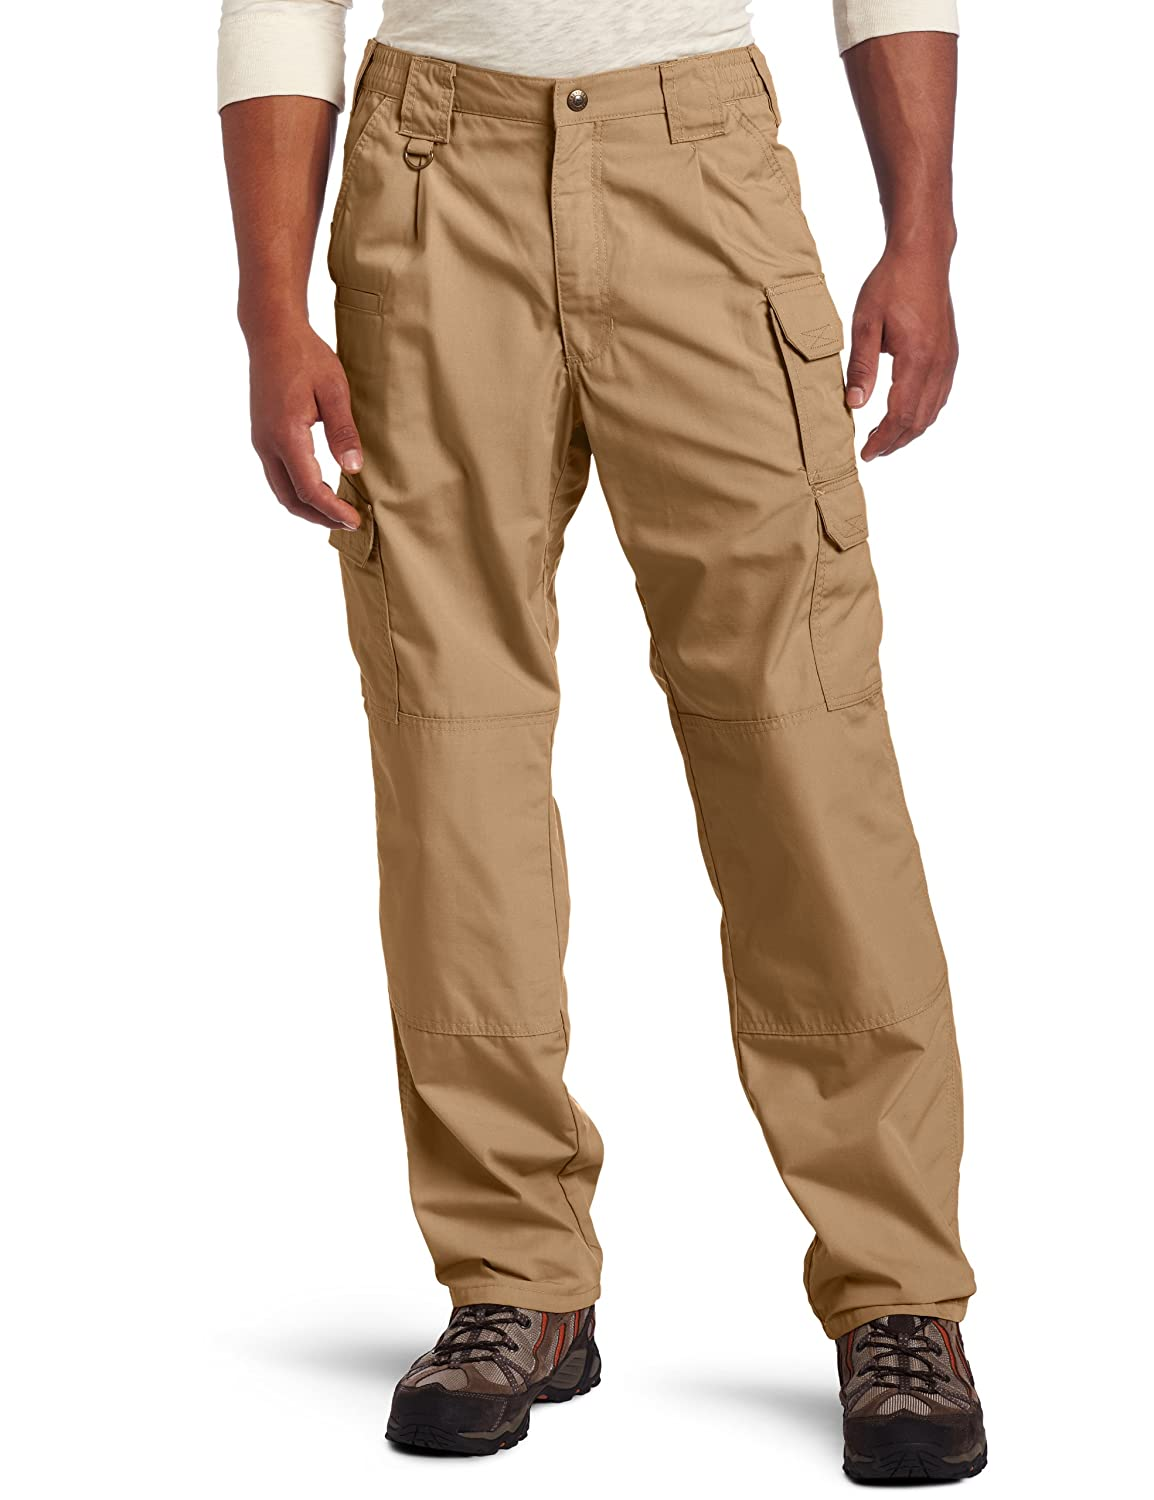 5.11 makes great military-grade tactical gear, including these awesome pants.